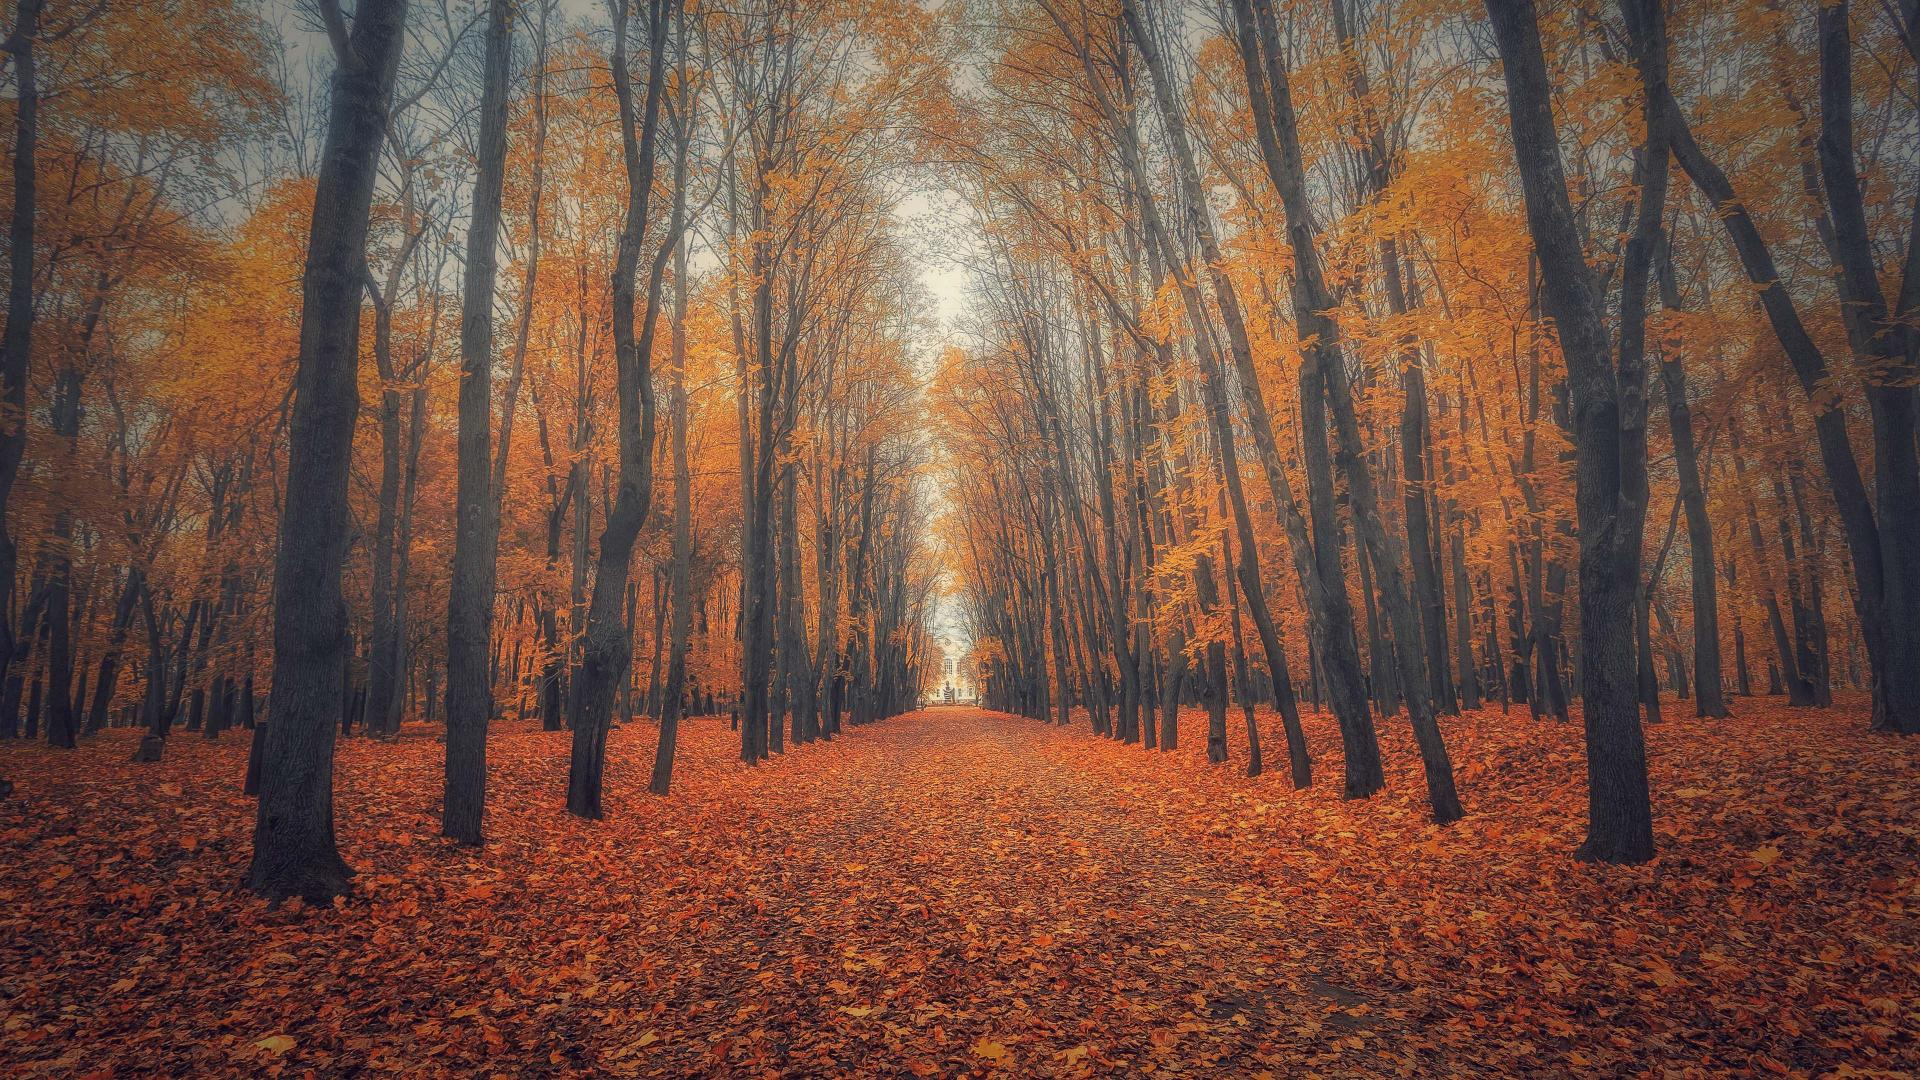 Big Size Wallpapers With Quotes Beautiful Nature Wallpaper Big Size 17 With Autumn Forest